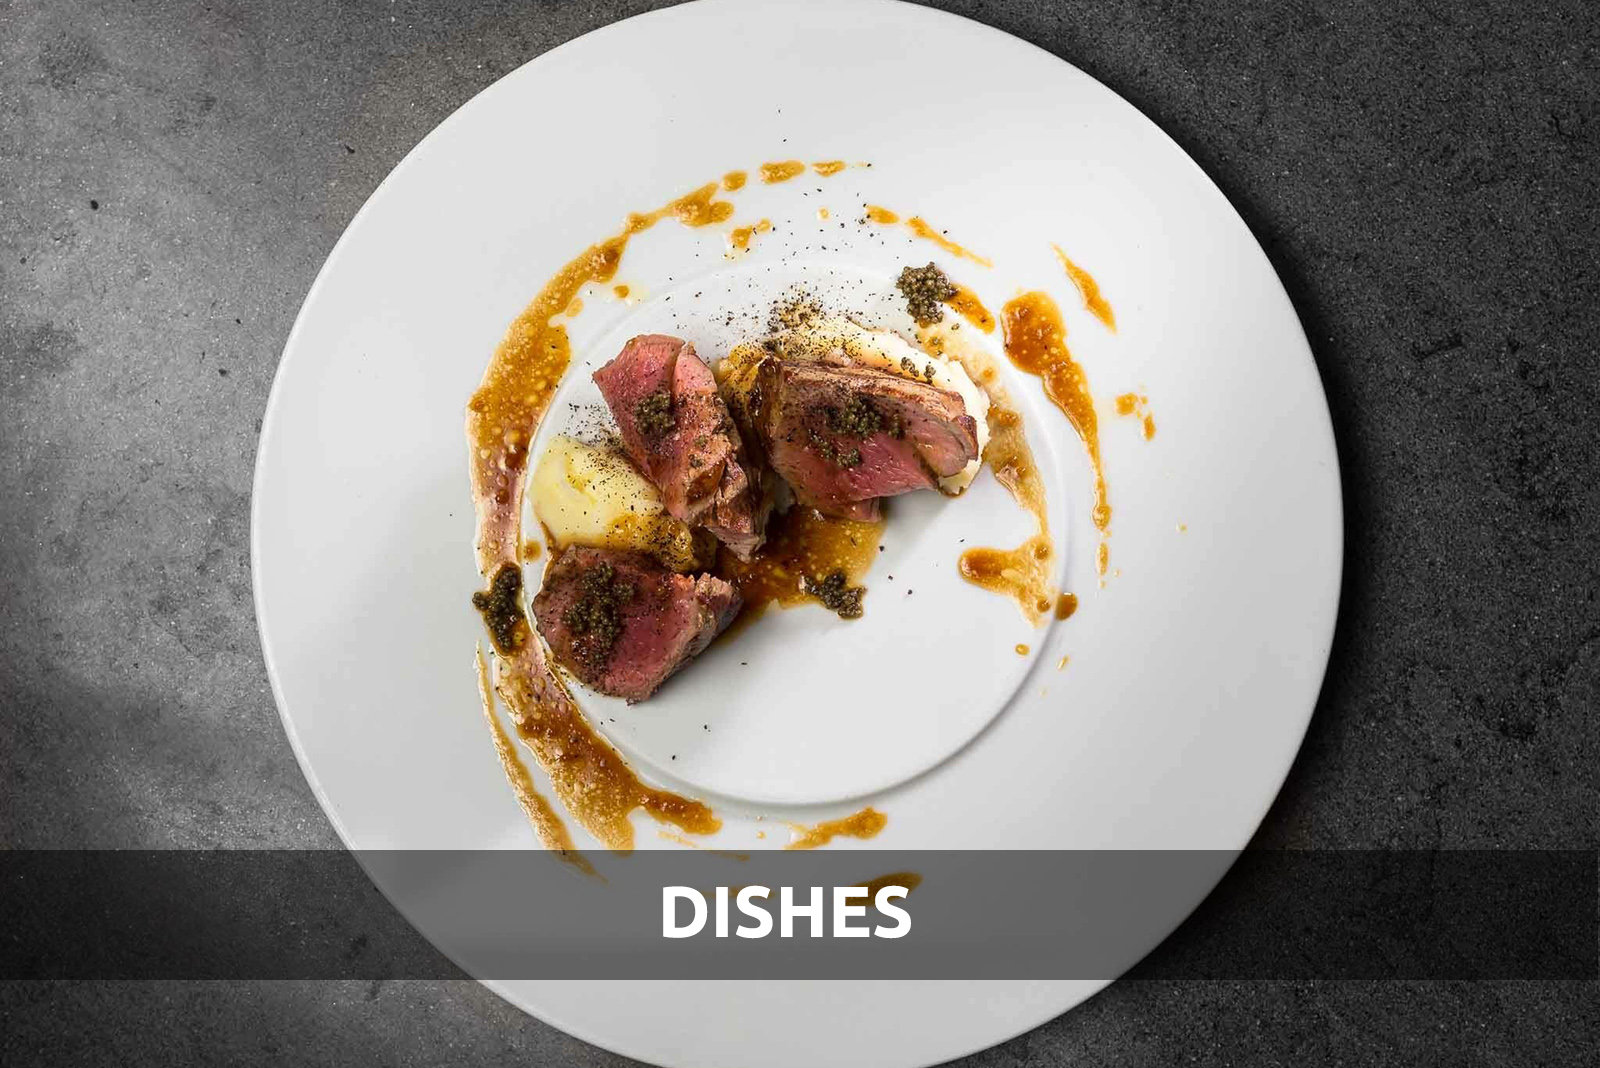 dishes-title-first